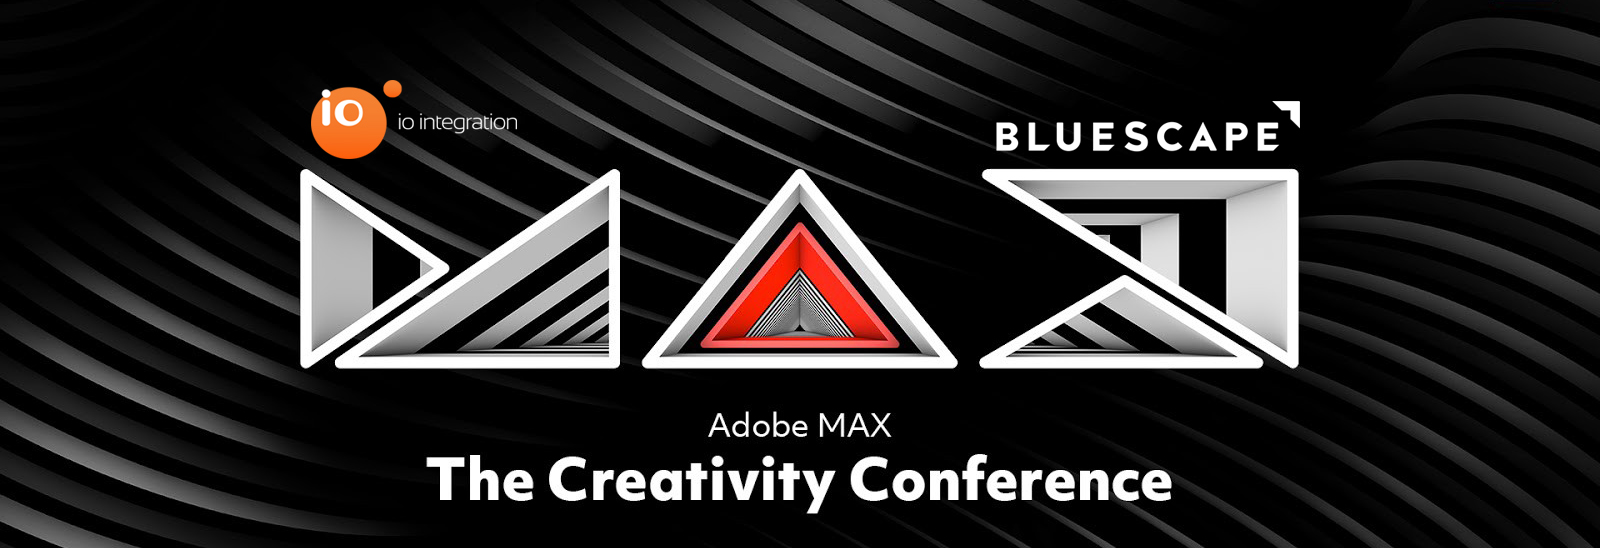 Visual Touchscreen Collaboration With Bluescape Shines At Adobe Max 2019